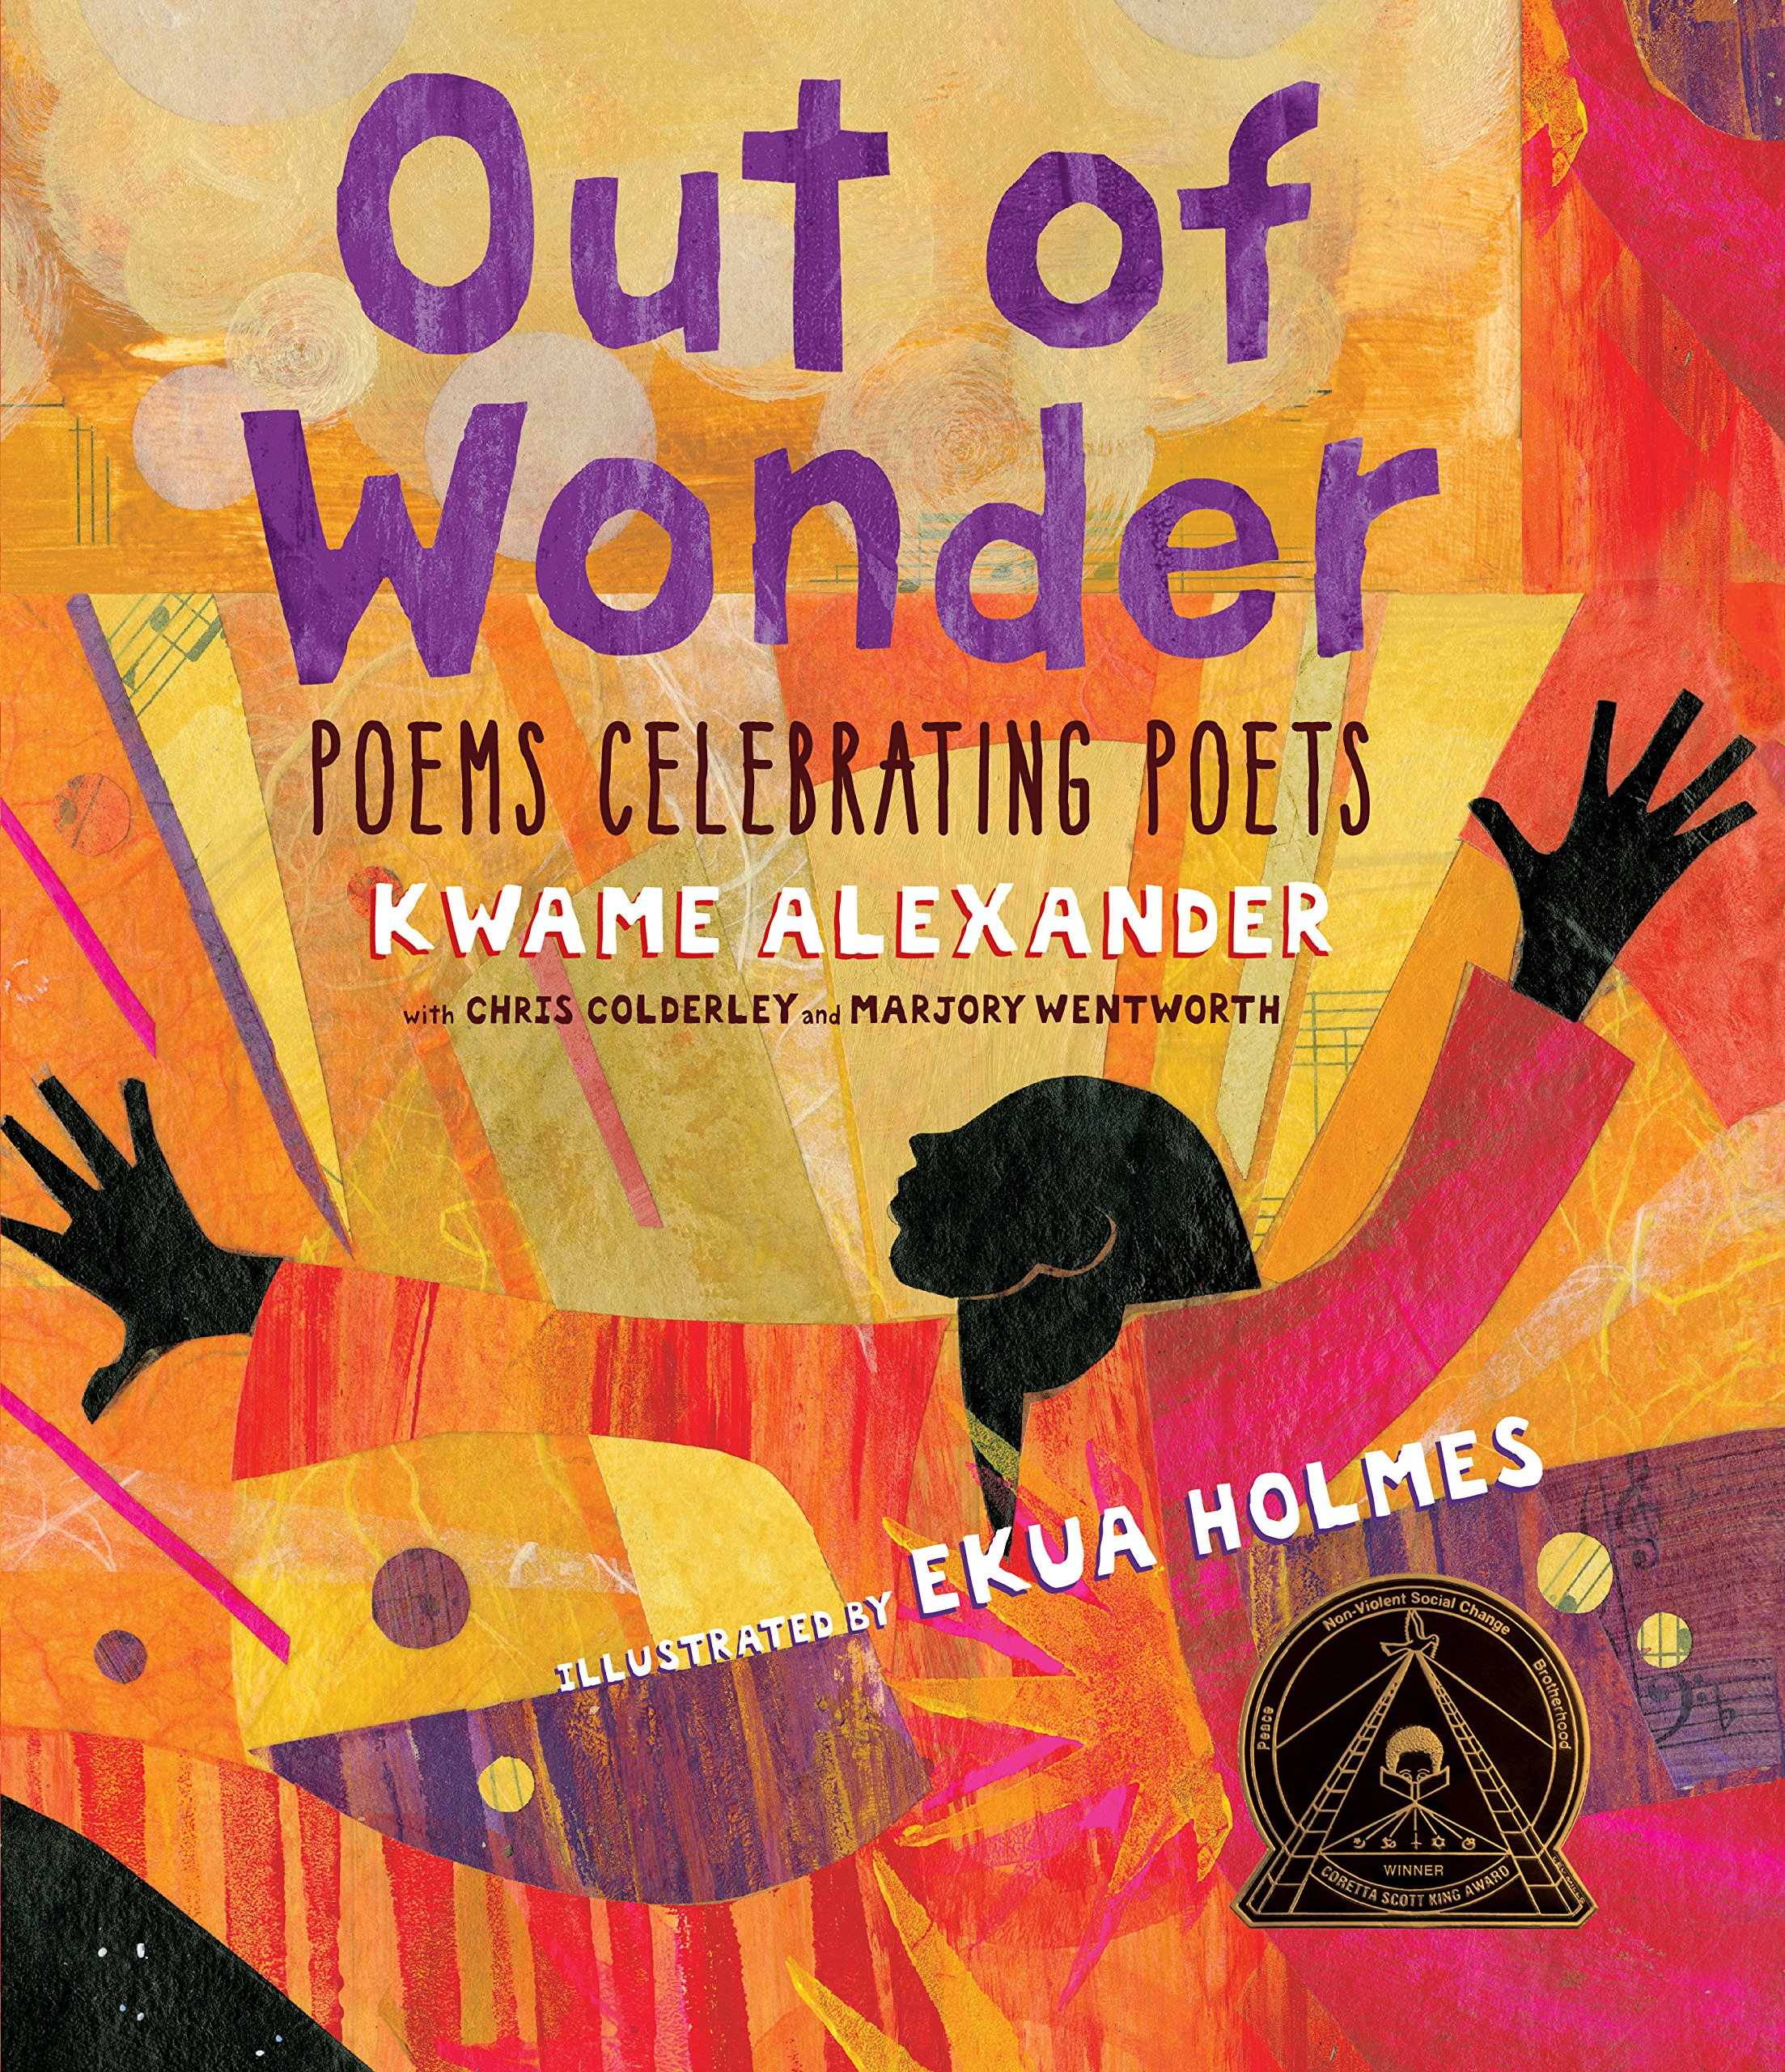 Out of Wonder: Poems Celebrating Poets , by Kwame Alexander, Chris Colderley, and Marjory Wentworth